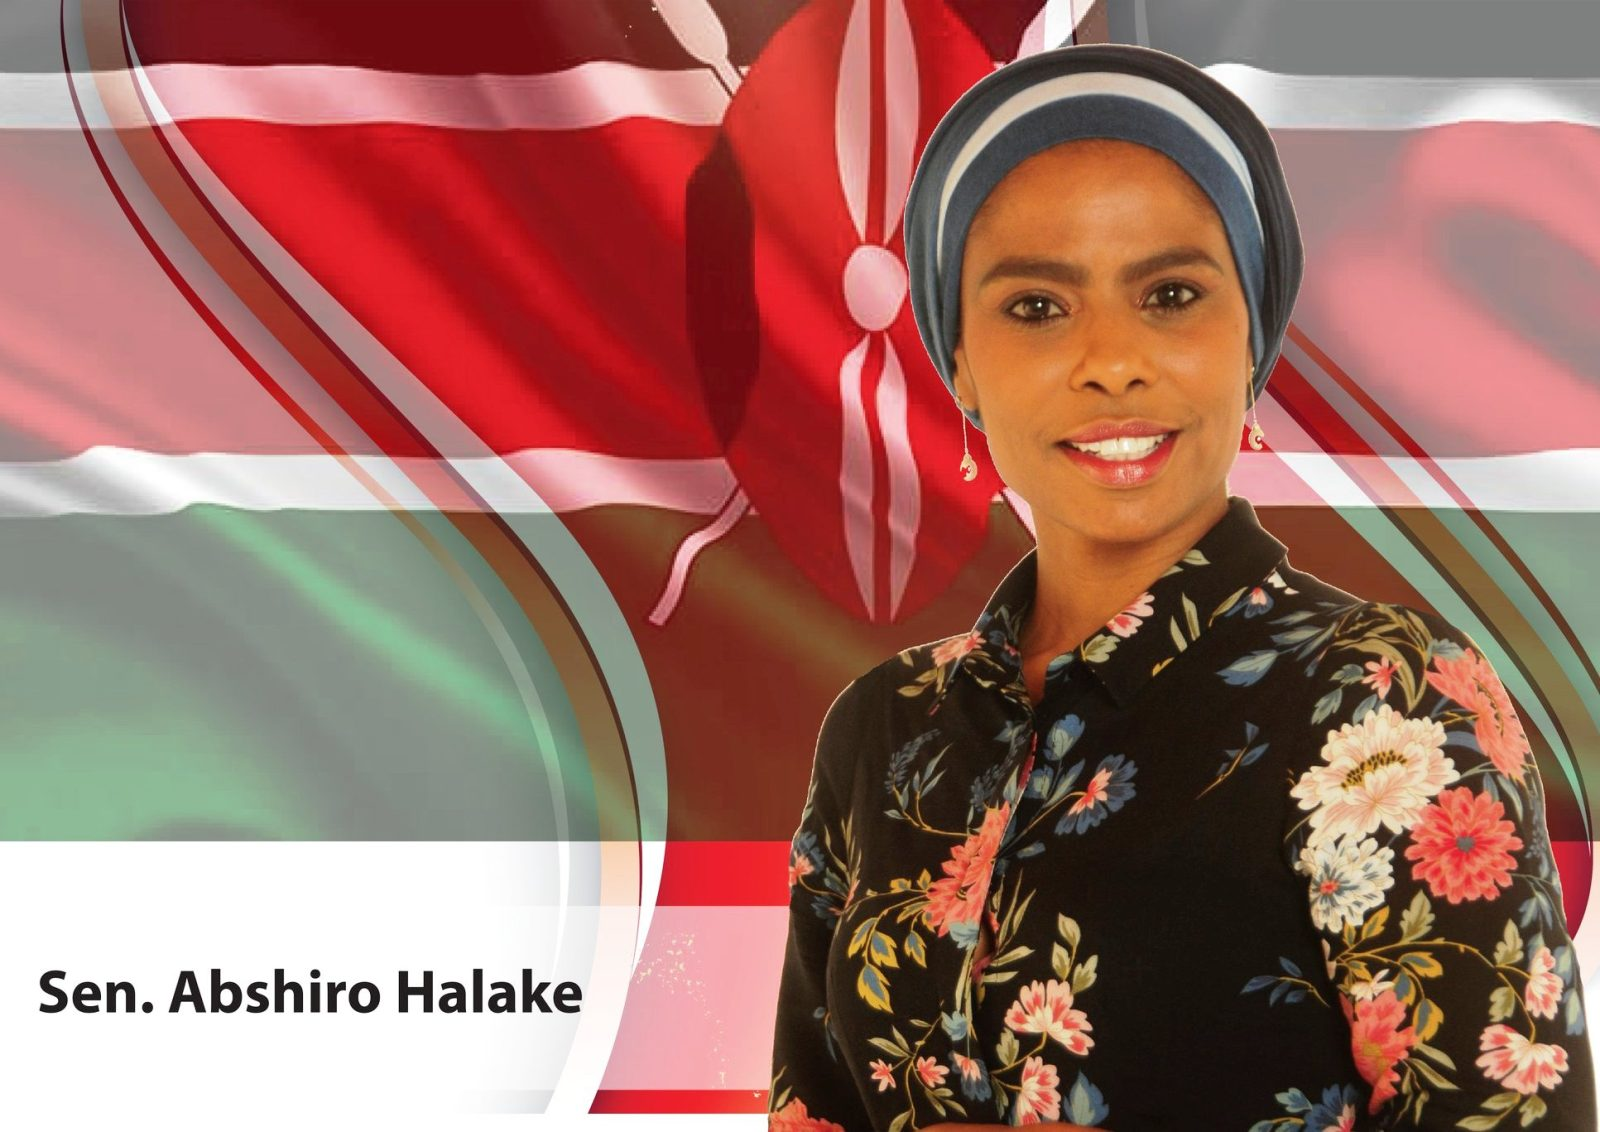 Hon. Abshiro Halake. She is seeking to have the deadline for filing 2019 KRA returns extended.